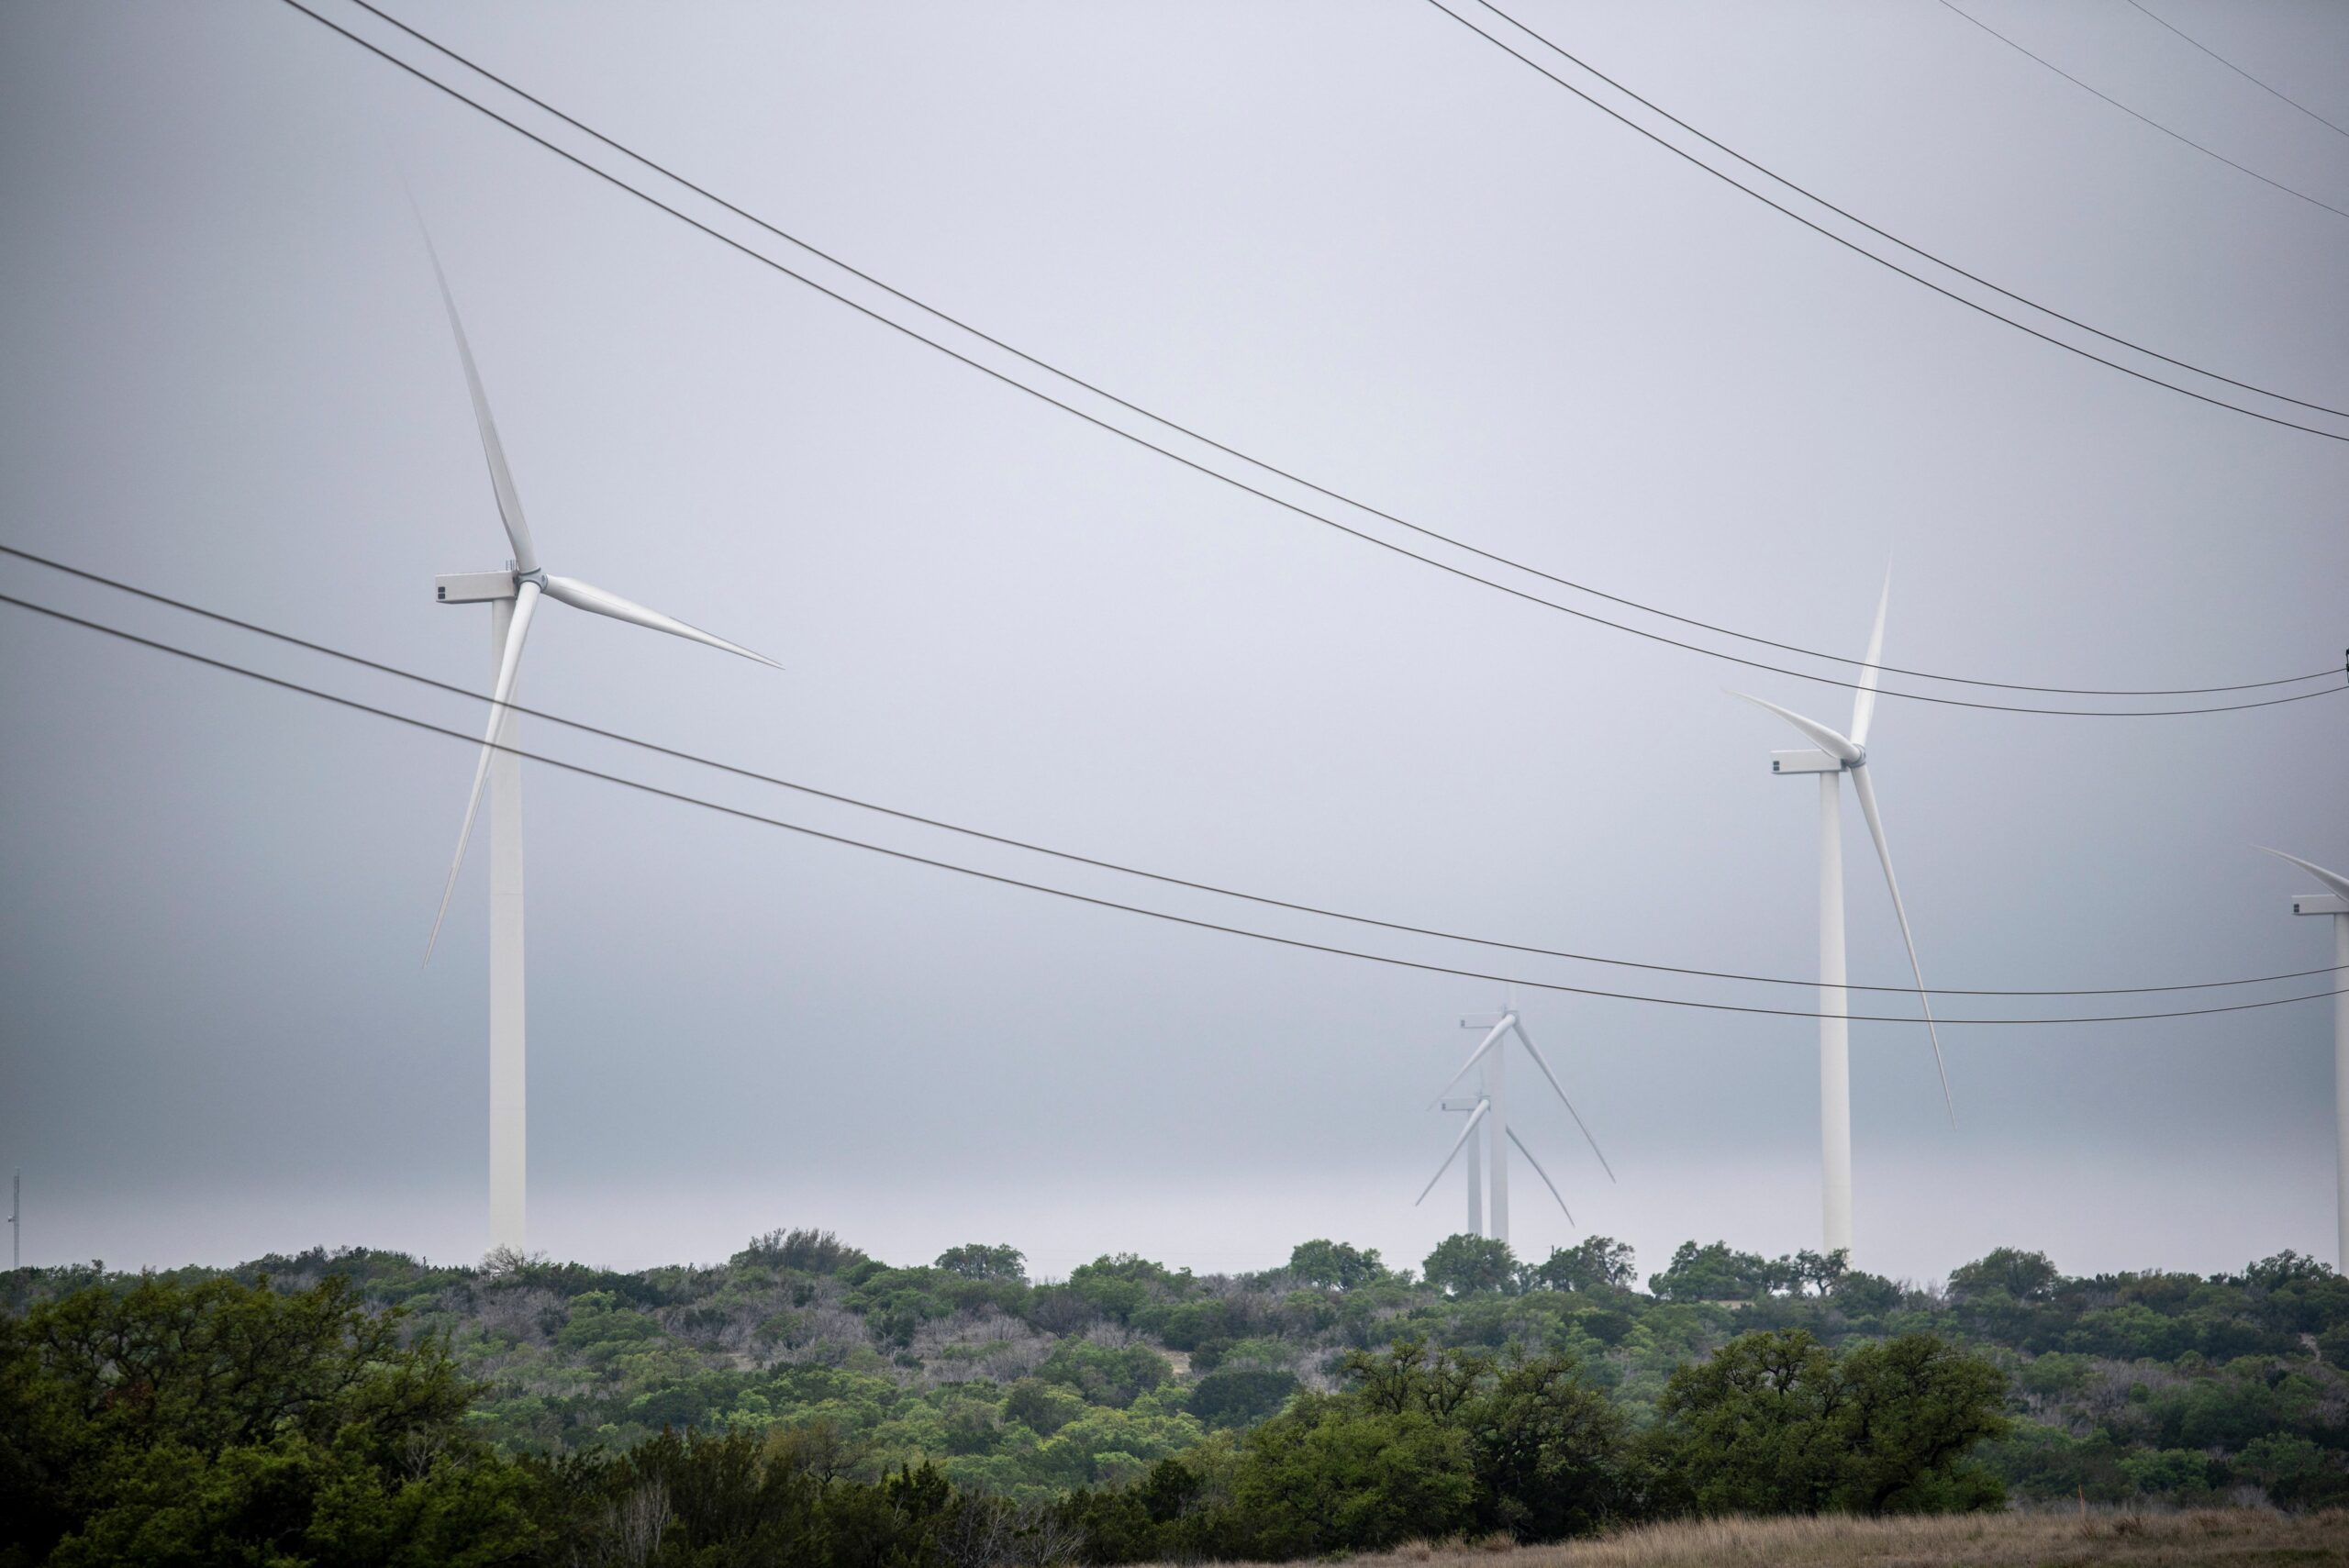 Blades from a wind turbine rotate in a field, April 16, 2021 near Eldorado, Texas. Credit: Sergio Flores/AFP via Getty Images